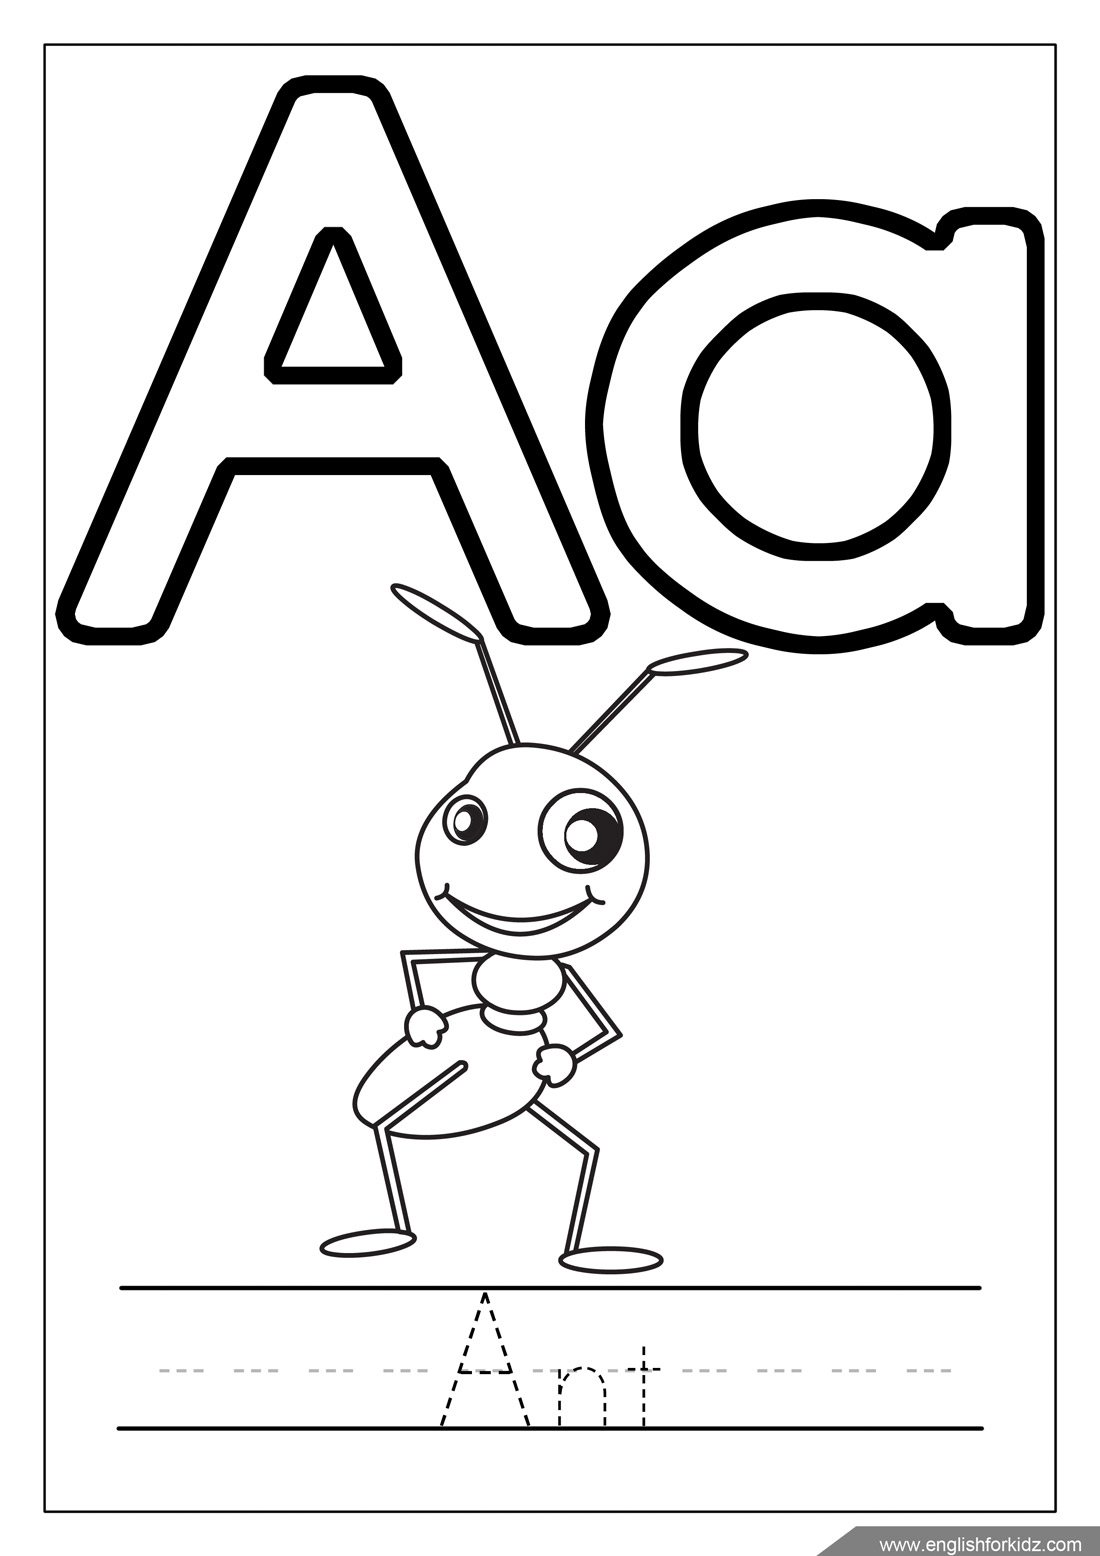 toddler abc coloring pages free kids coloring pages with abc coloring home toddler abc pages coloring